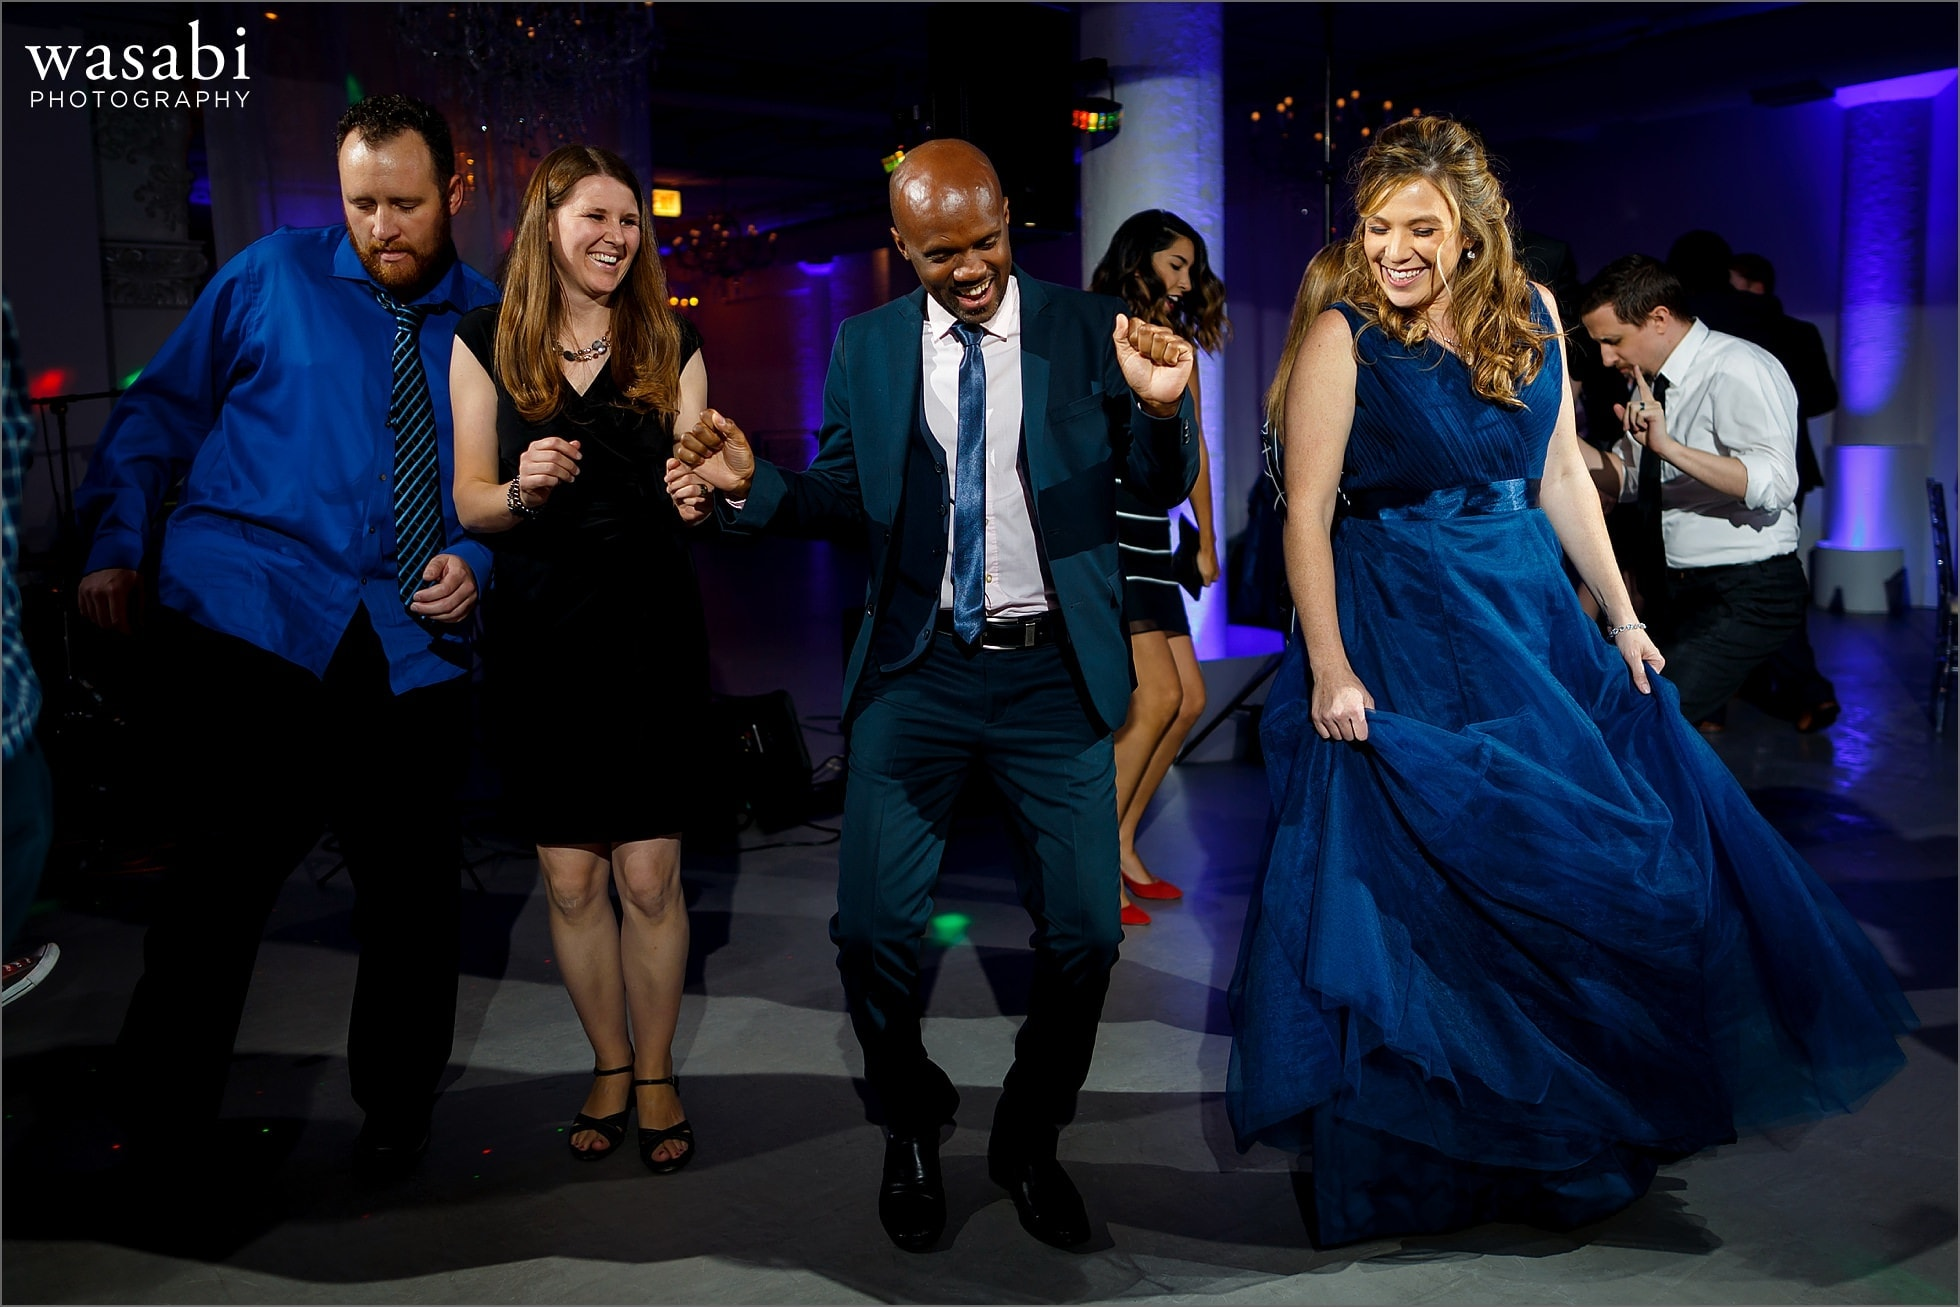 guests dance during wedding reception at Room 1520 in Chicago